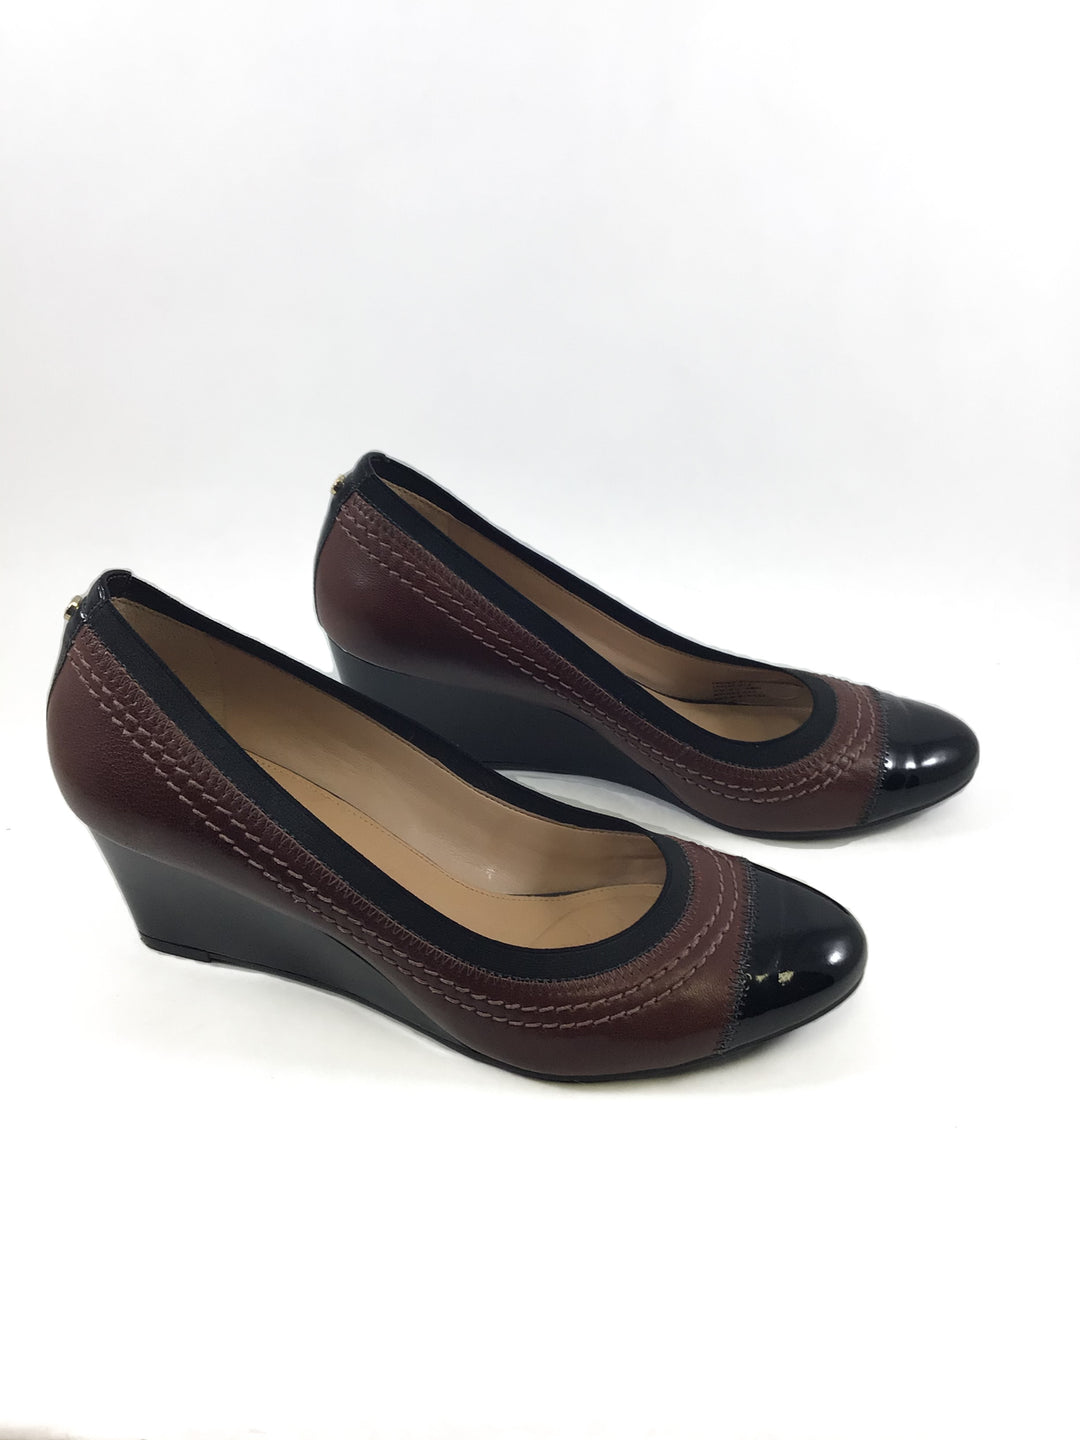 Primary Photo - BRAND: ANTONIO MELANI <BR>STYLE: SHOES LOW HEEL <BR>COLOR: BROWN <BR>SIZE: 8.5 <BR>SKU: 213-213149-1050